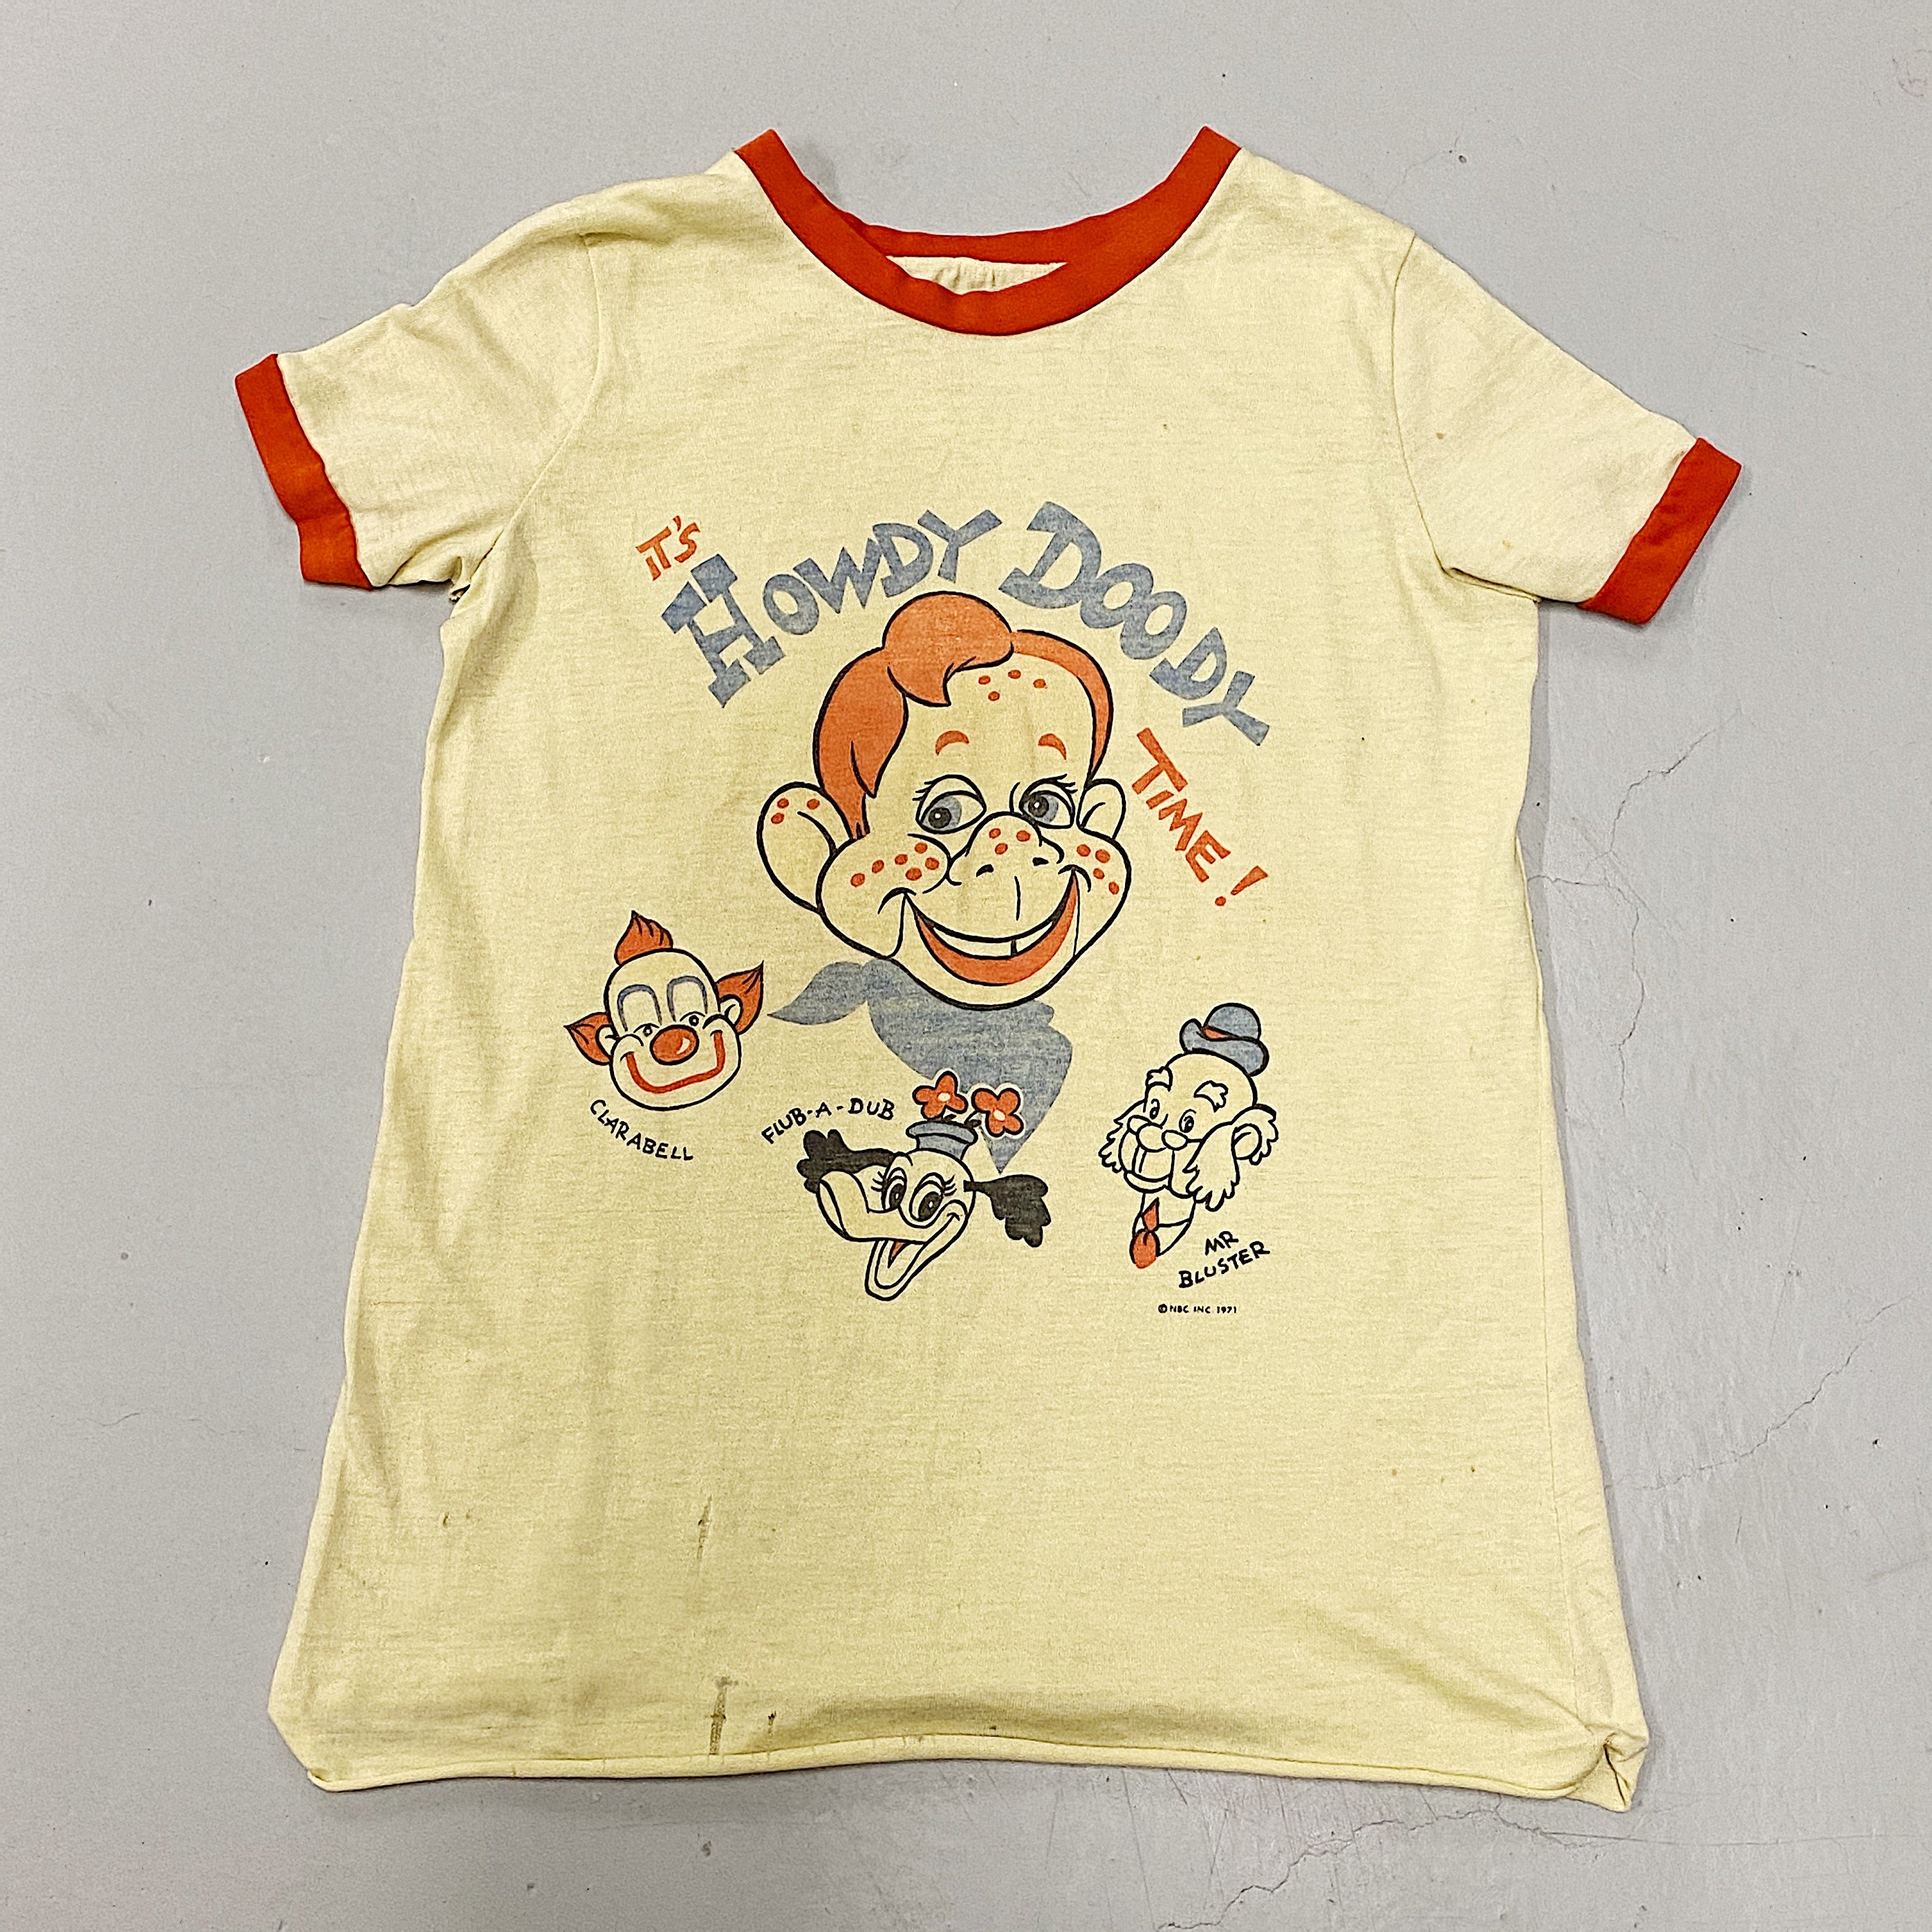 Vintage Howdy Doody Shirt - 1971 NBC - Hipster Apparel - Rare 1970s Apparel - Pop Culture Shirts - Television Promo